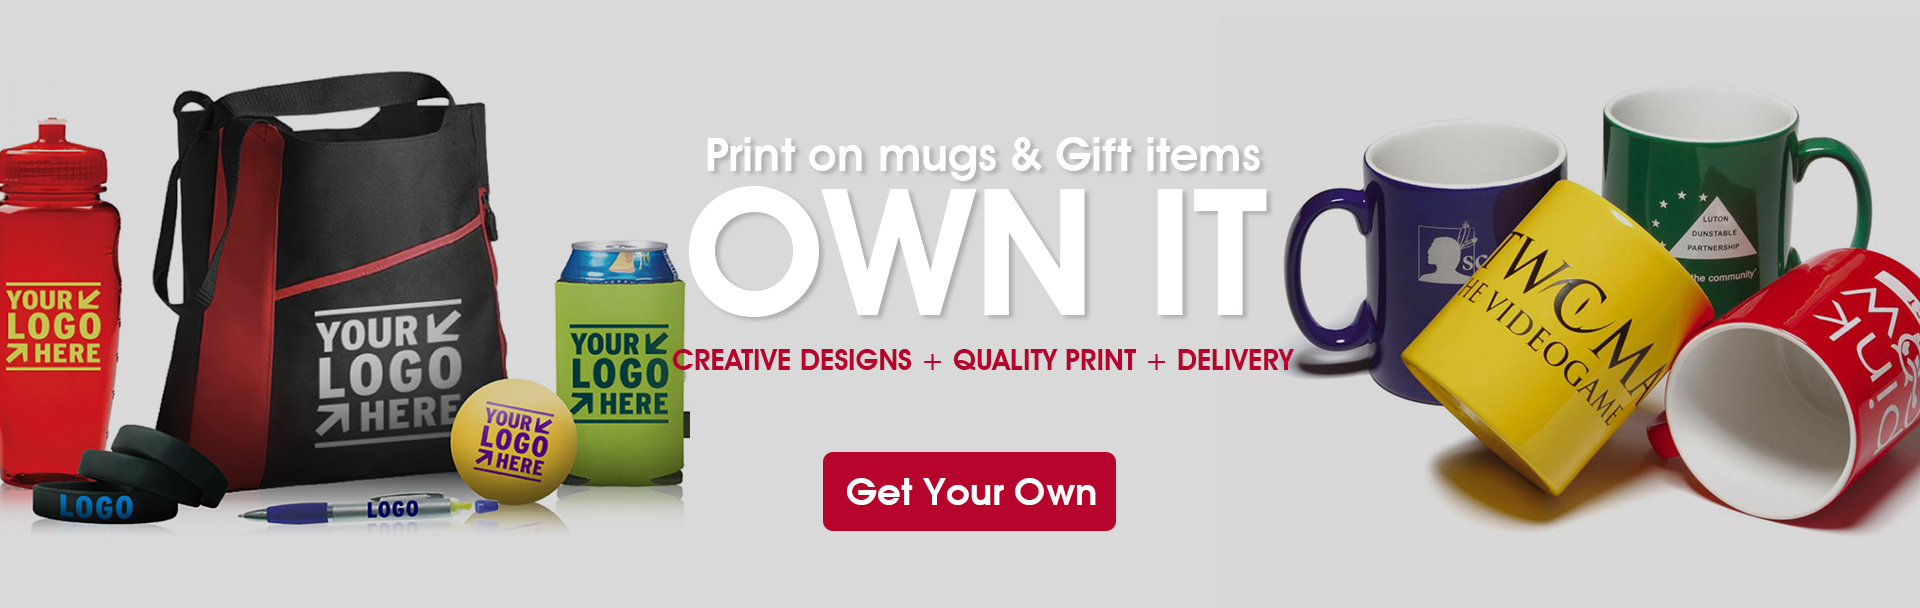 Corporate Gifts Printing in chaukhandi INDIA